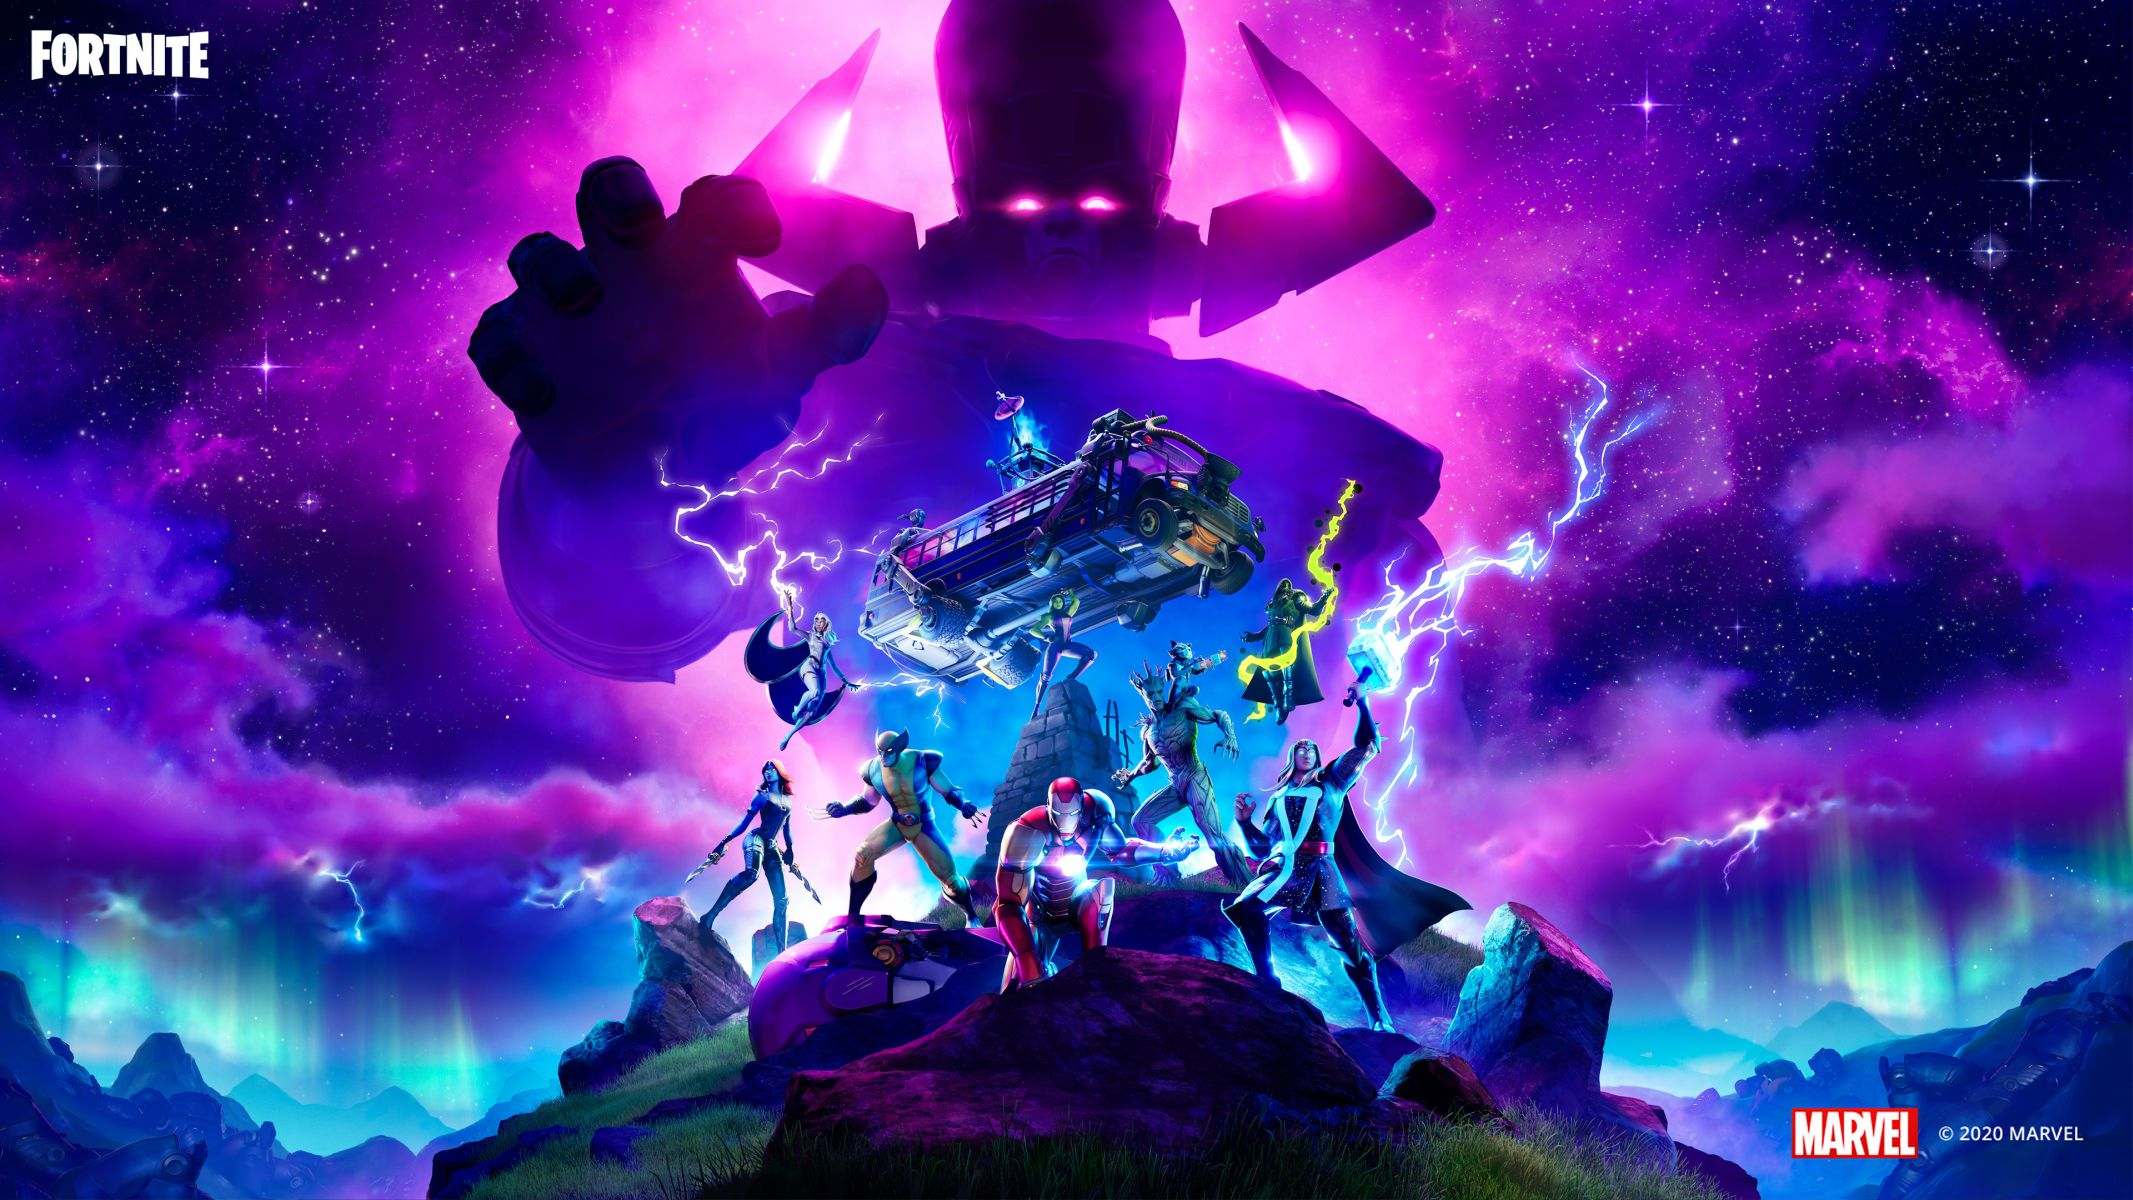 Fortnite Galactus Marvel Event